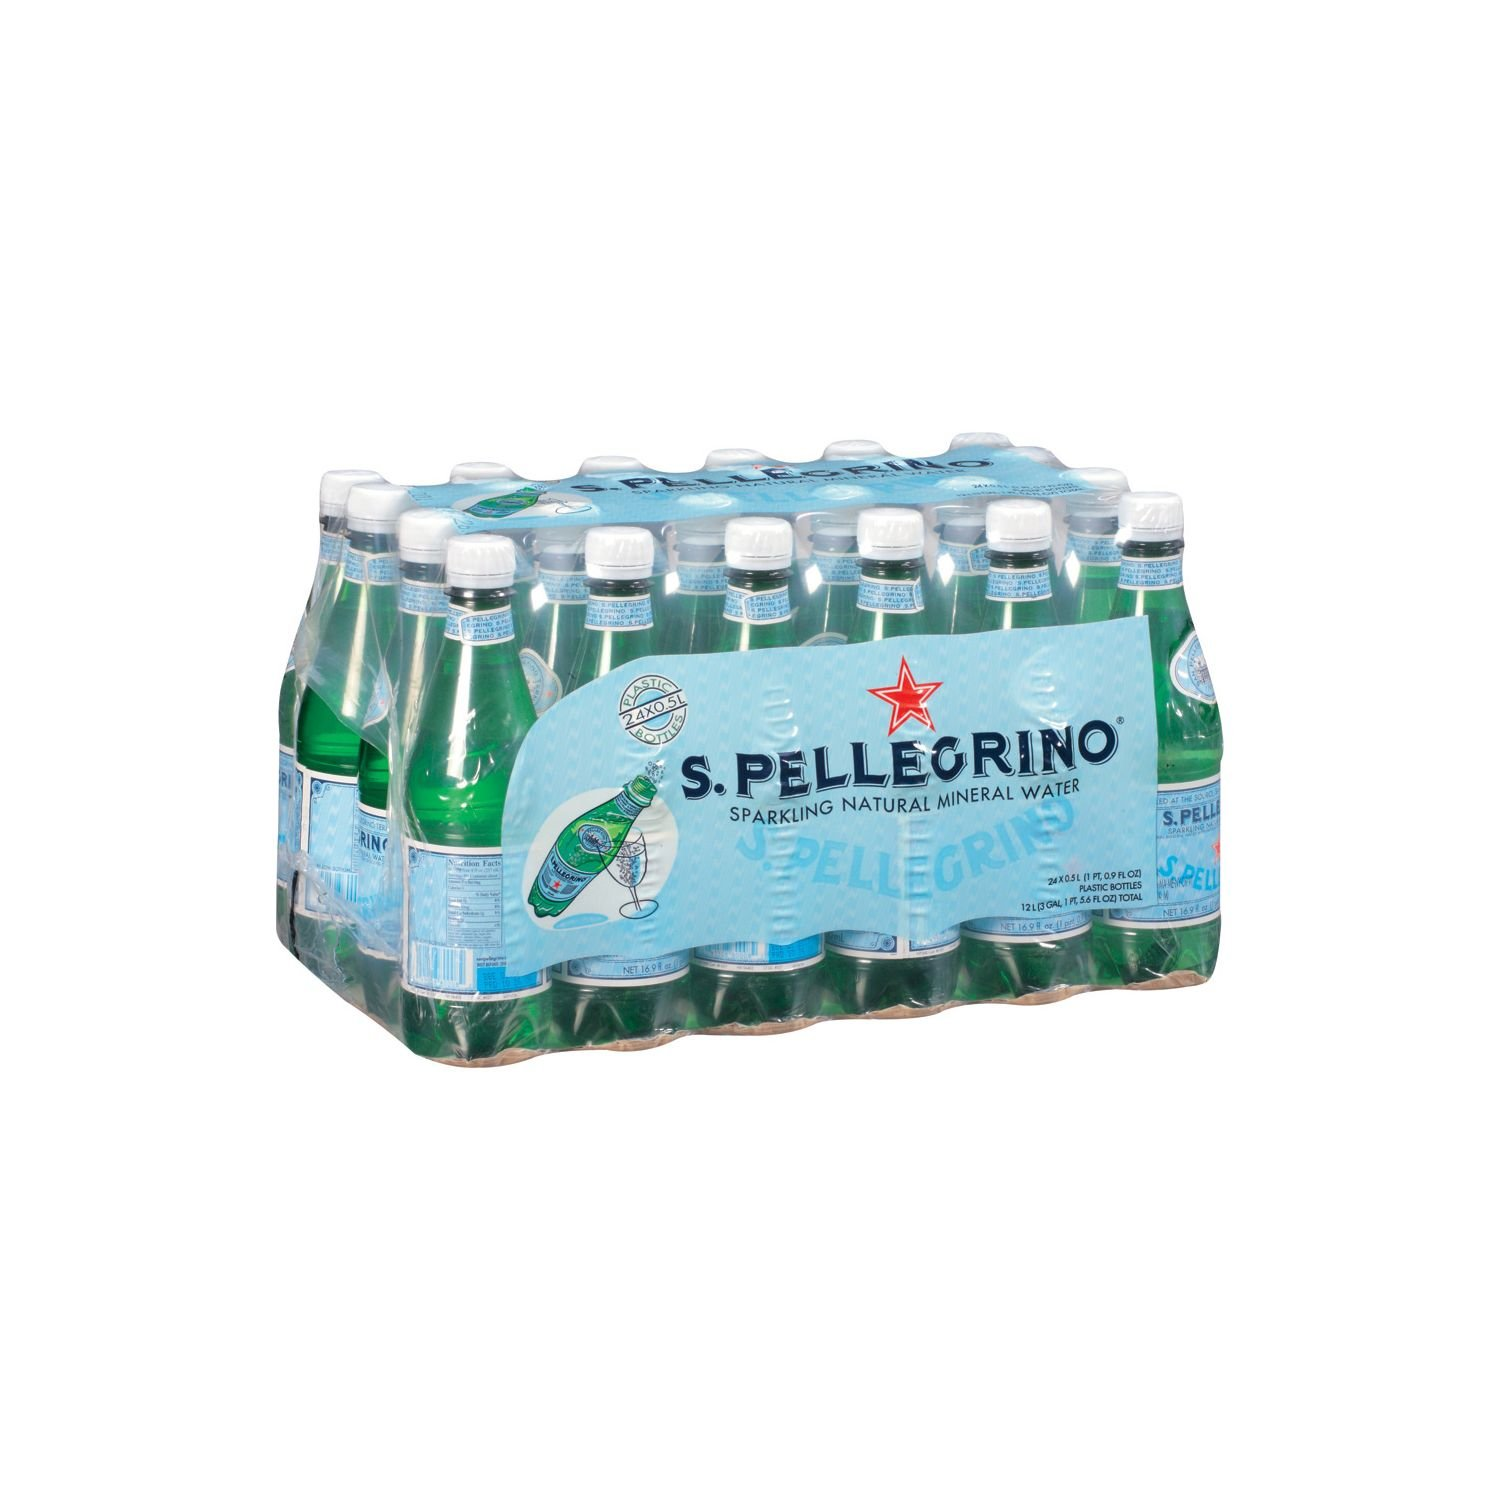 S.Pellegrino Sparkling Natural Mineral Water (0.5 L bottles, 24 ct.) (pack of 6)